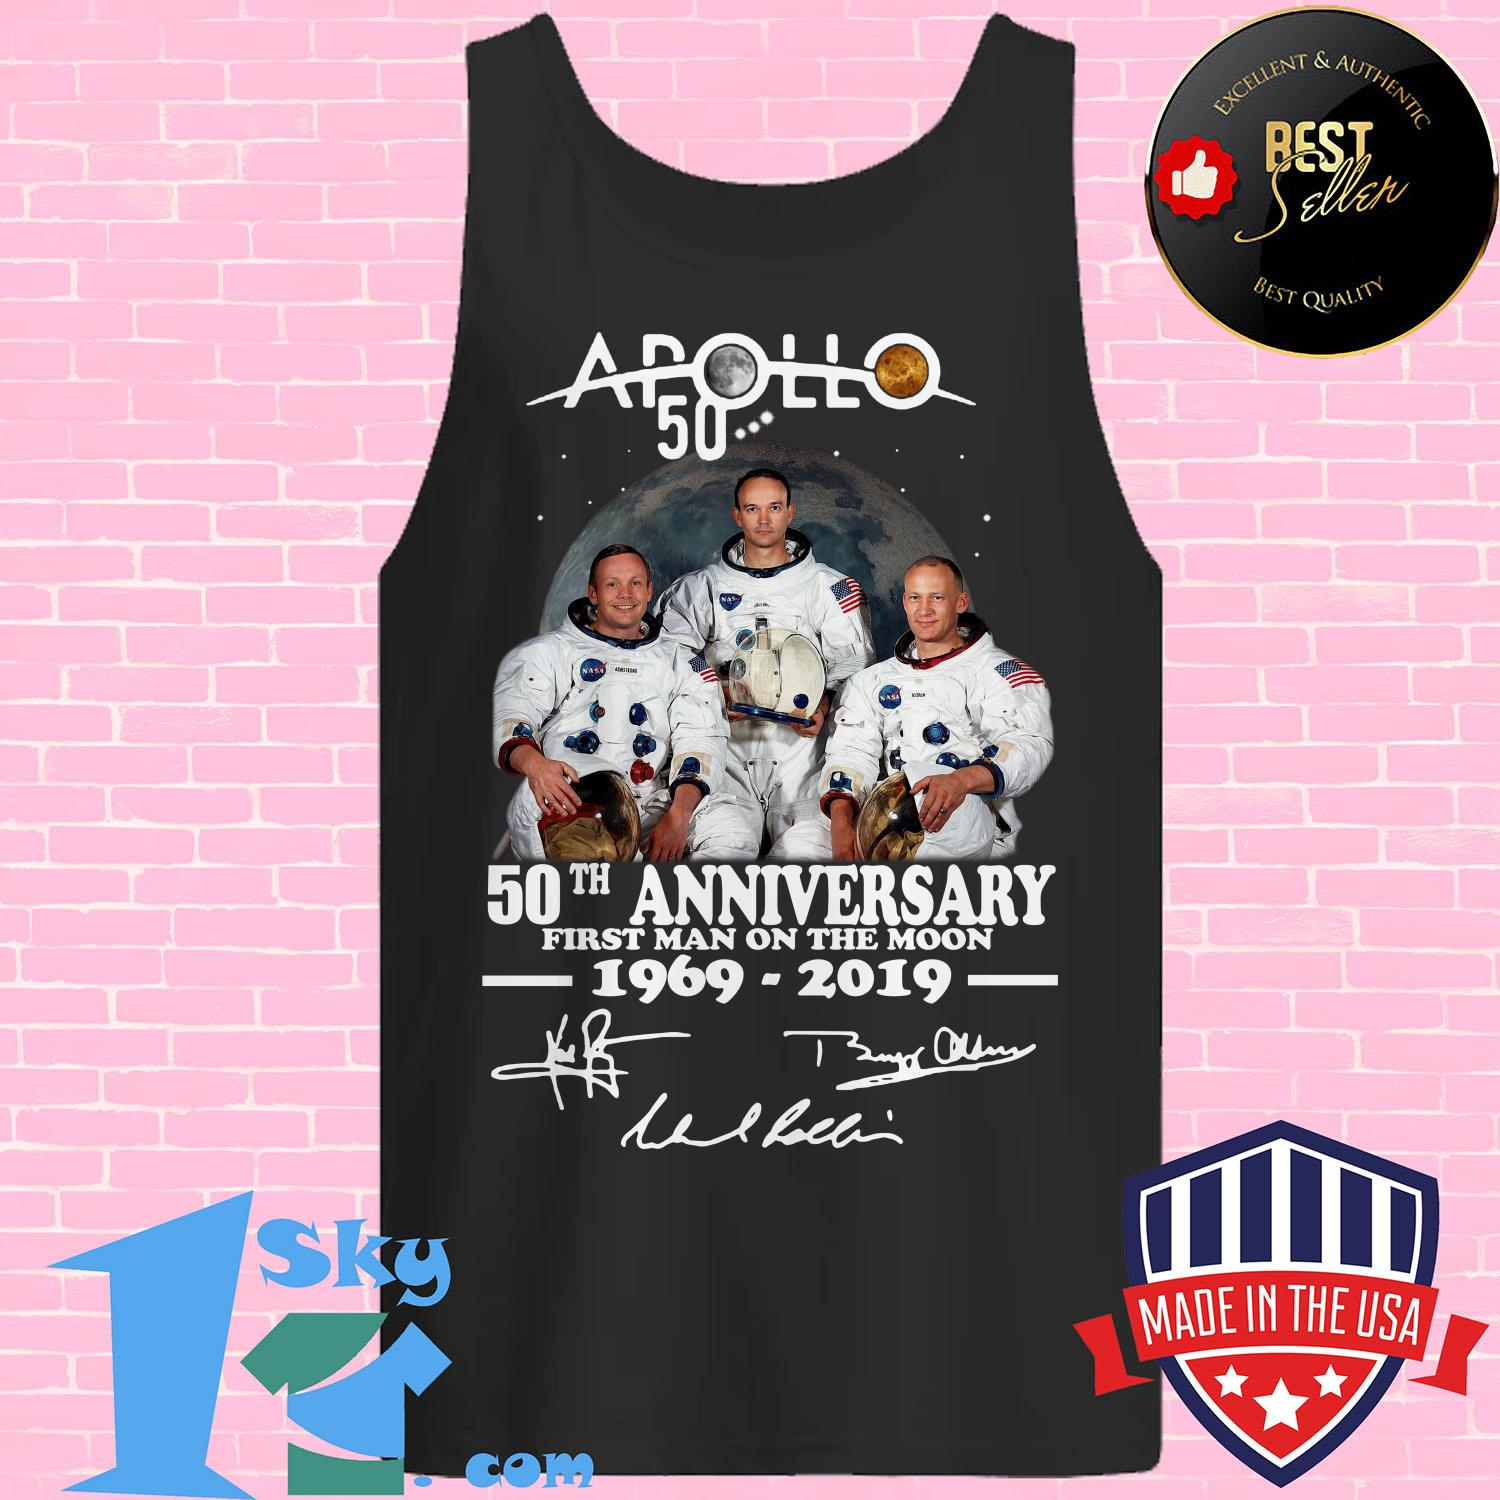 apollo 50th anniversary first man on the moon 1969 2019 rabbit skins toddler fleece signature tank top - Apollo 50th anniversary first Man on the moon 1969-2019 rabbit skins toddler fleece signature shirt